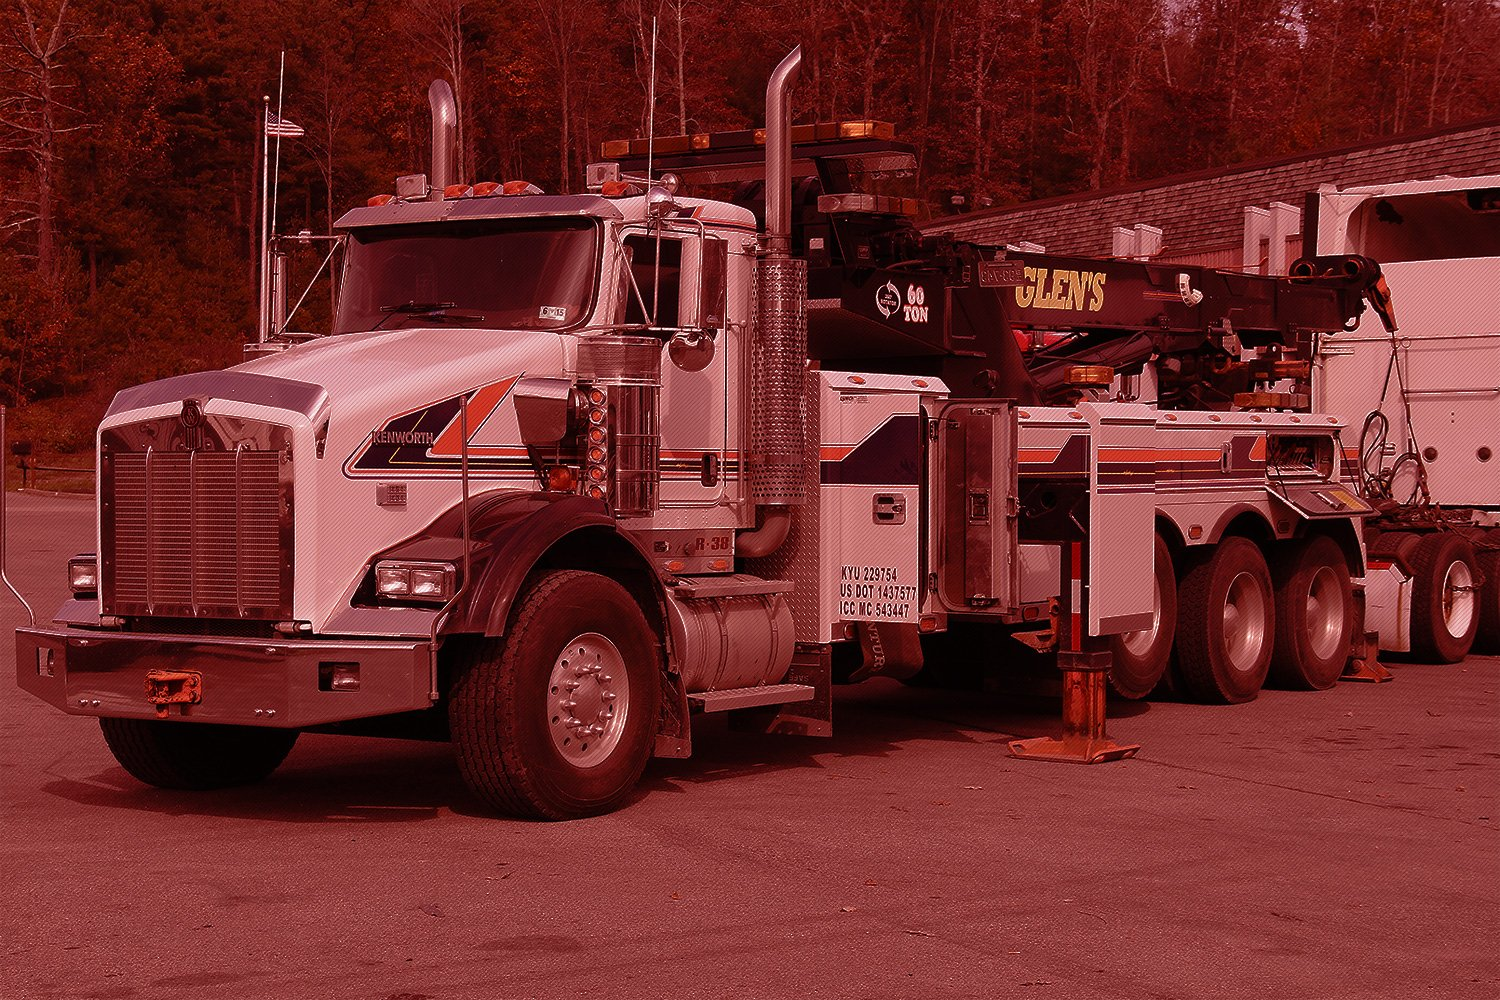 Glen's Towing Heavy Duty Rotator and Tow Truck Fleet Southern West Virginia